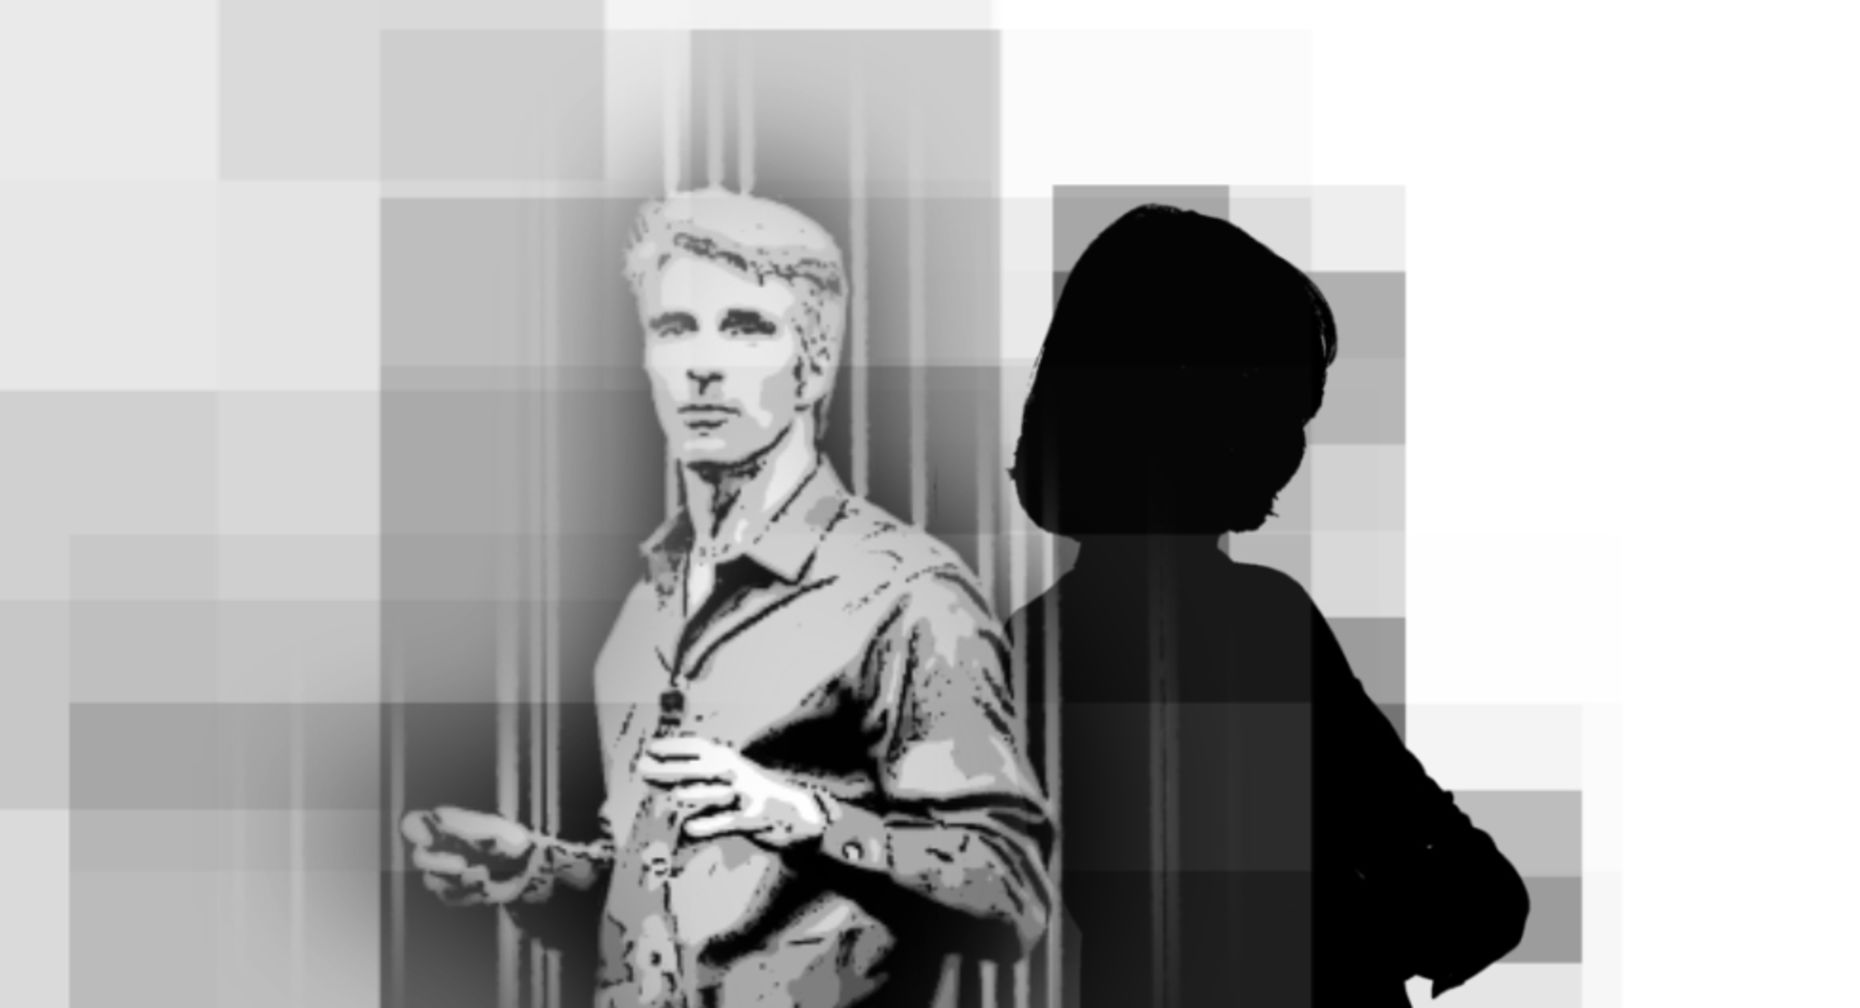 Apple software boss Craig Federighi and his field marshall. Illustration by Matthew Vascellaro.